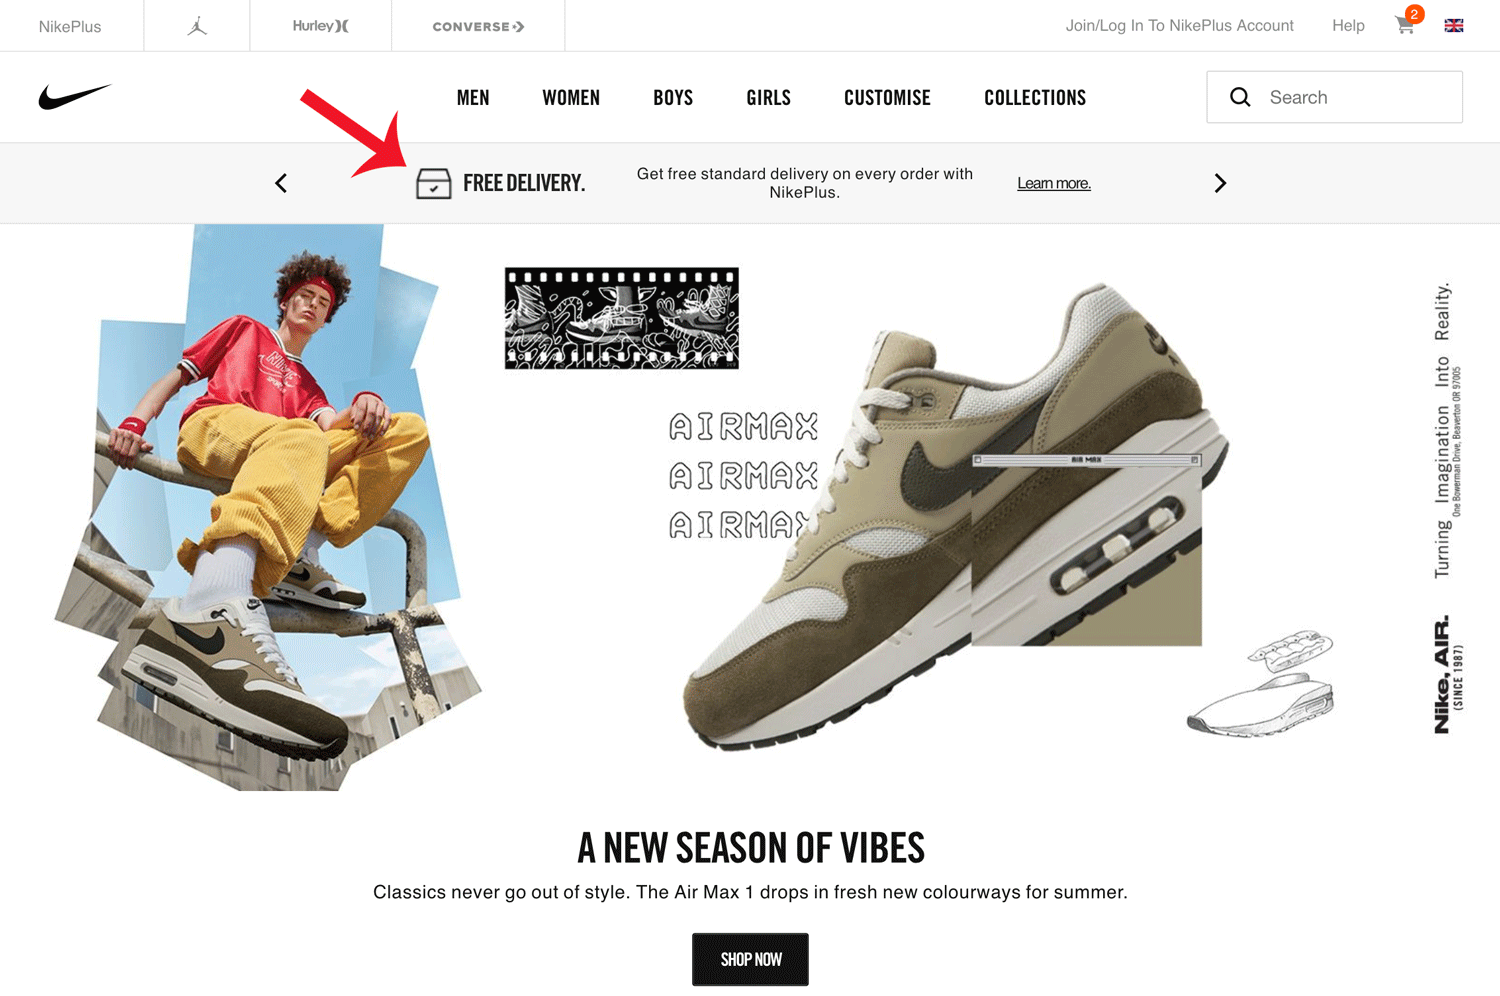 Screenshot showing a Nike landing page